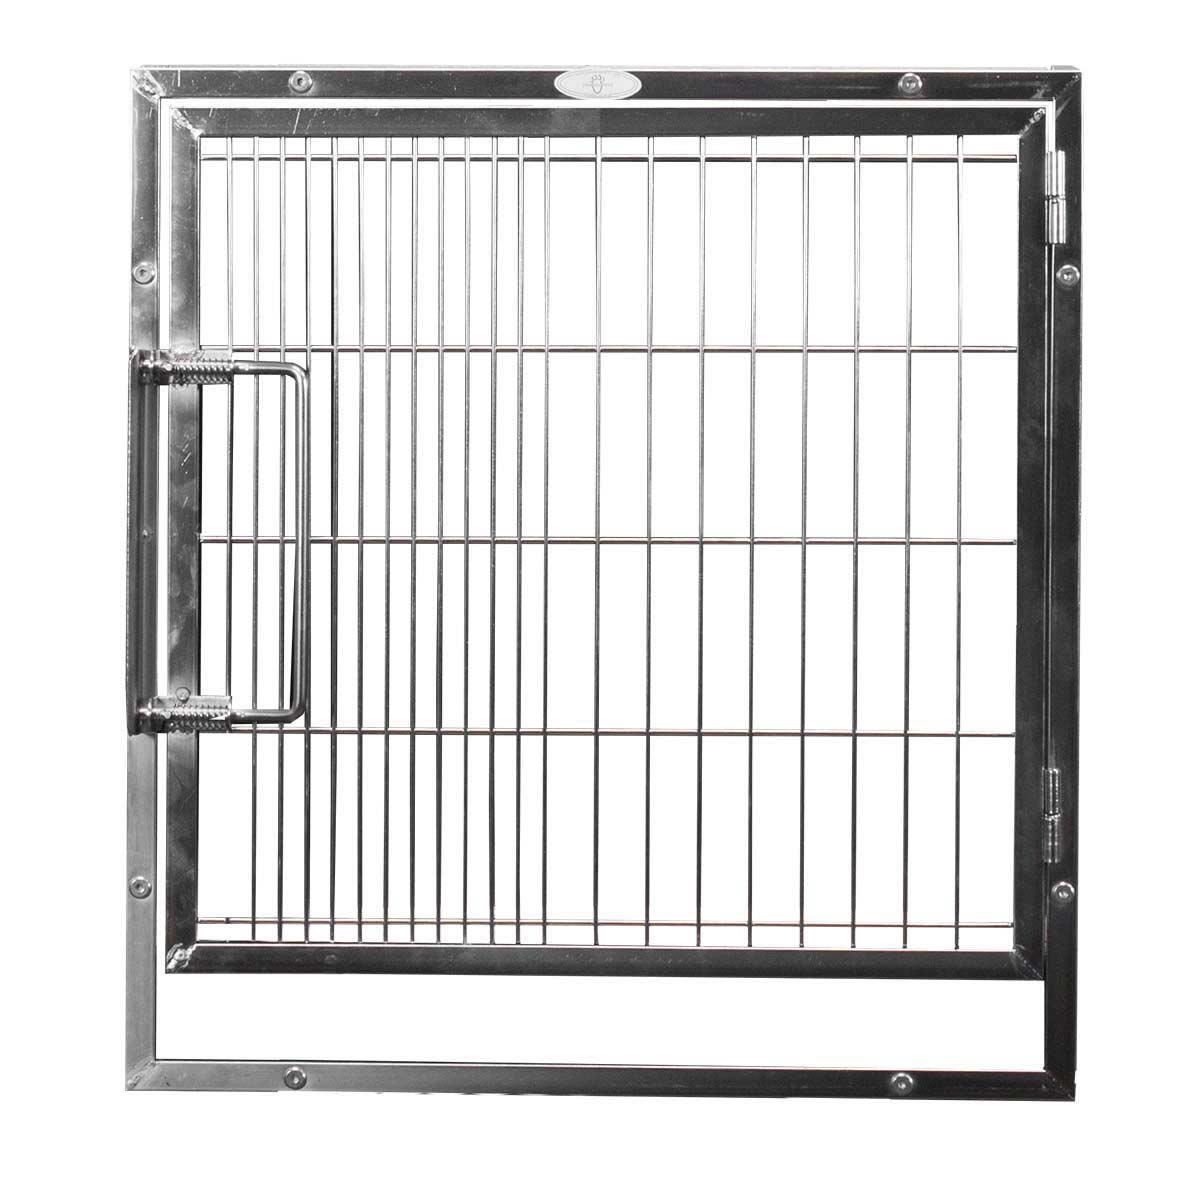 Medium-Short Stainless Steel Door Assembly For Modular Cages